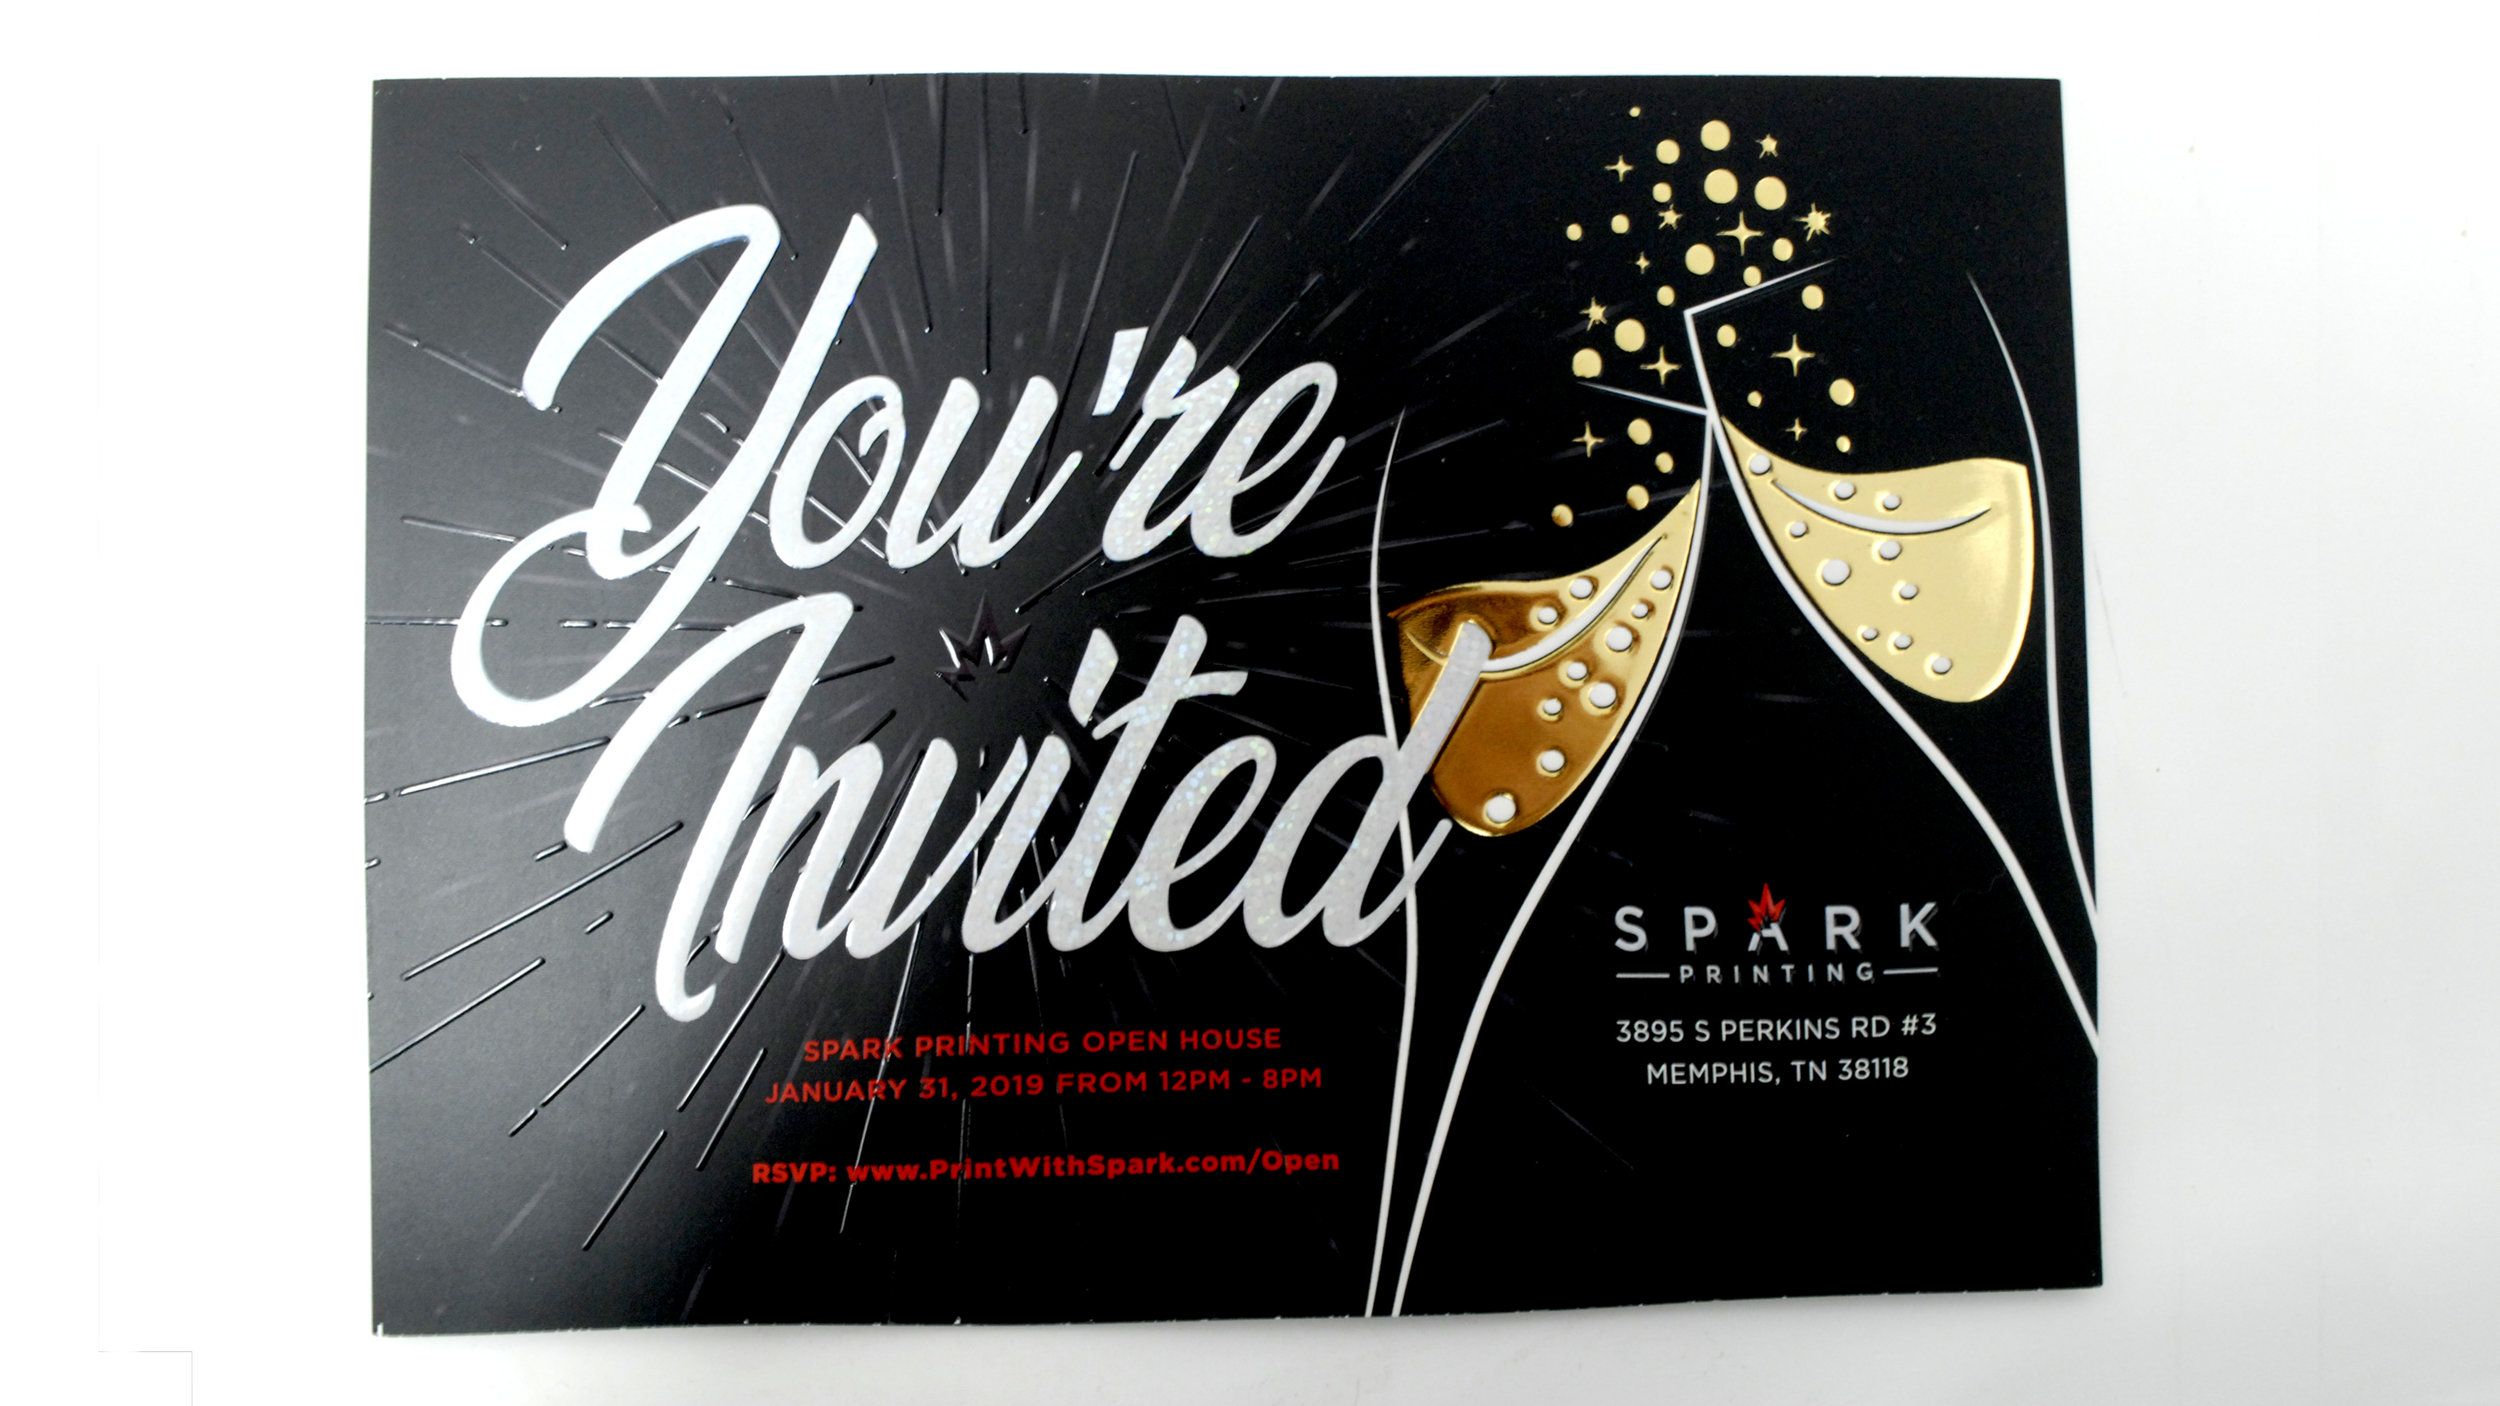 Spark-Printings_Open-House-Invitation_Print-Design_Invitation_Events_Dreamcapture_Branding_Memphis-TN_3.jpg